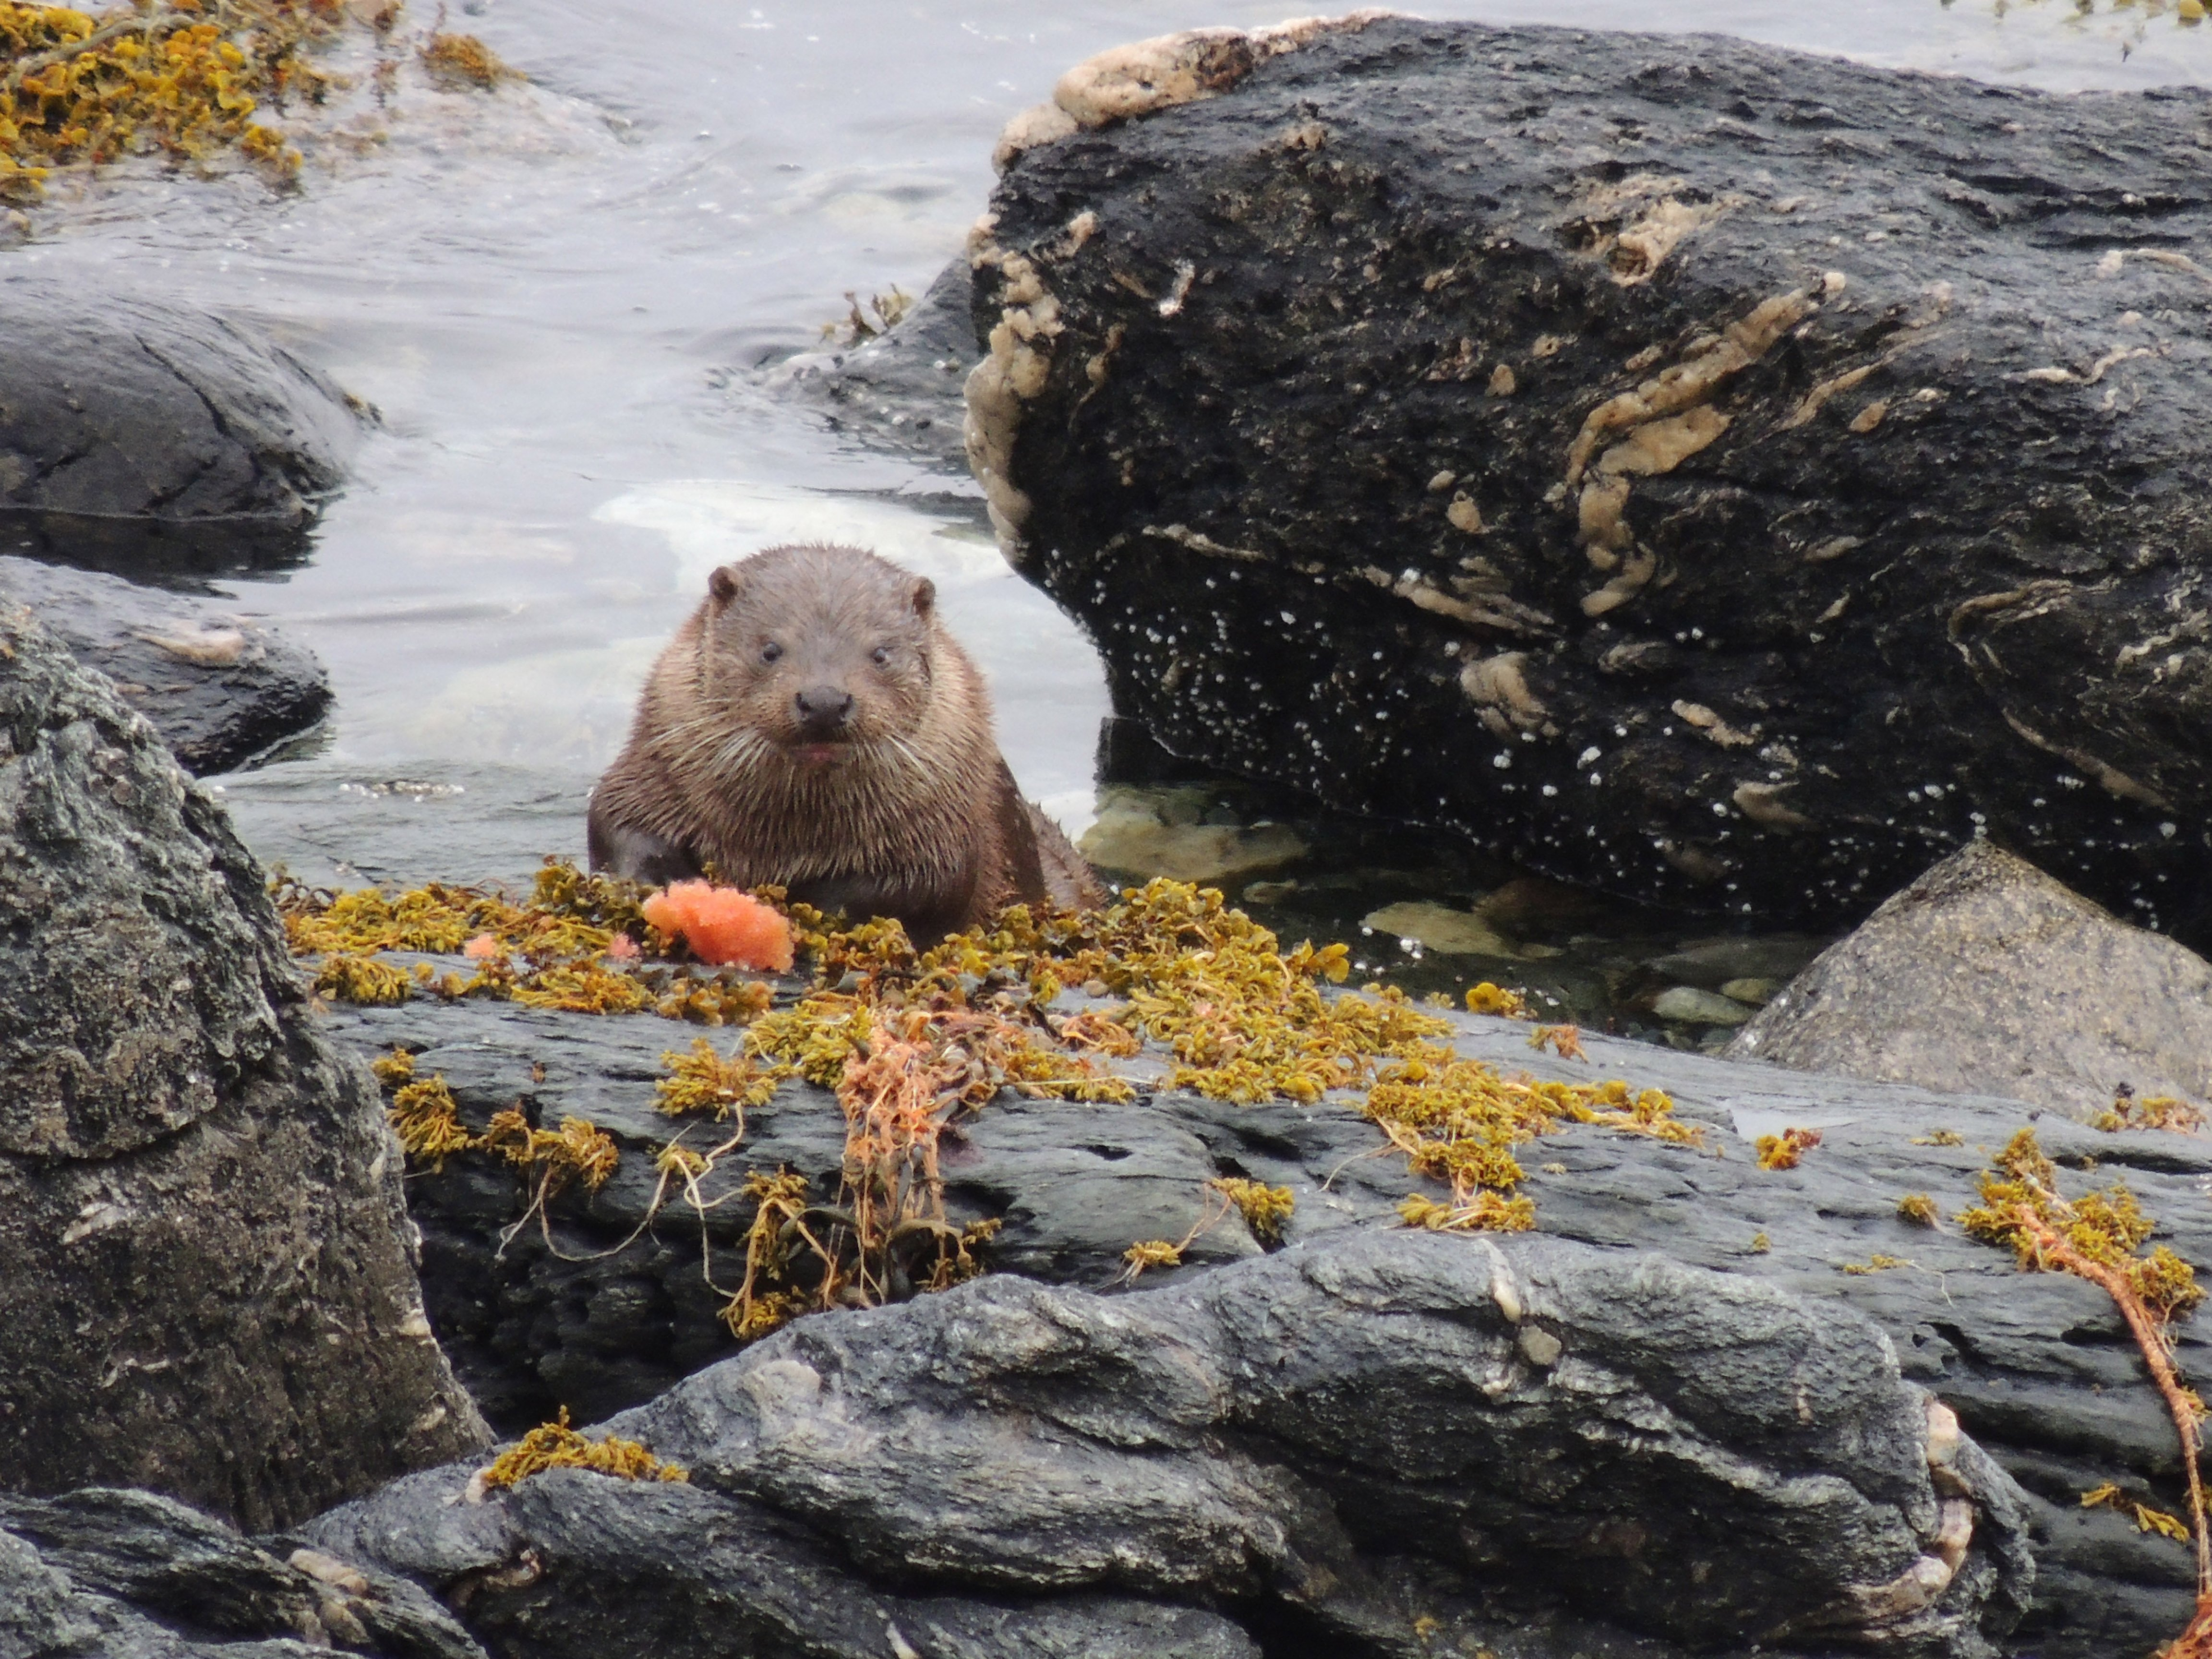 otter on rock in water